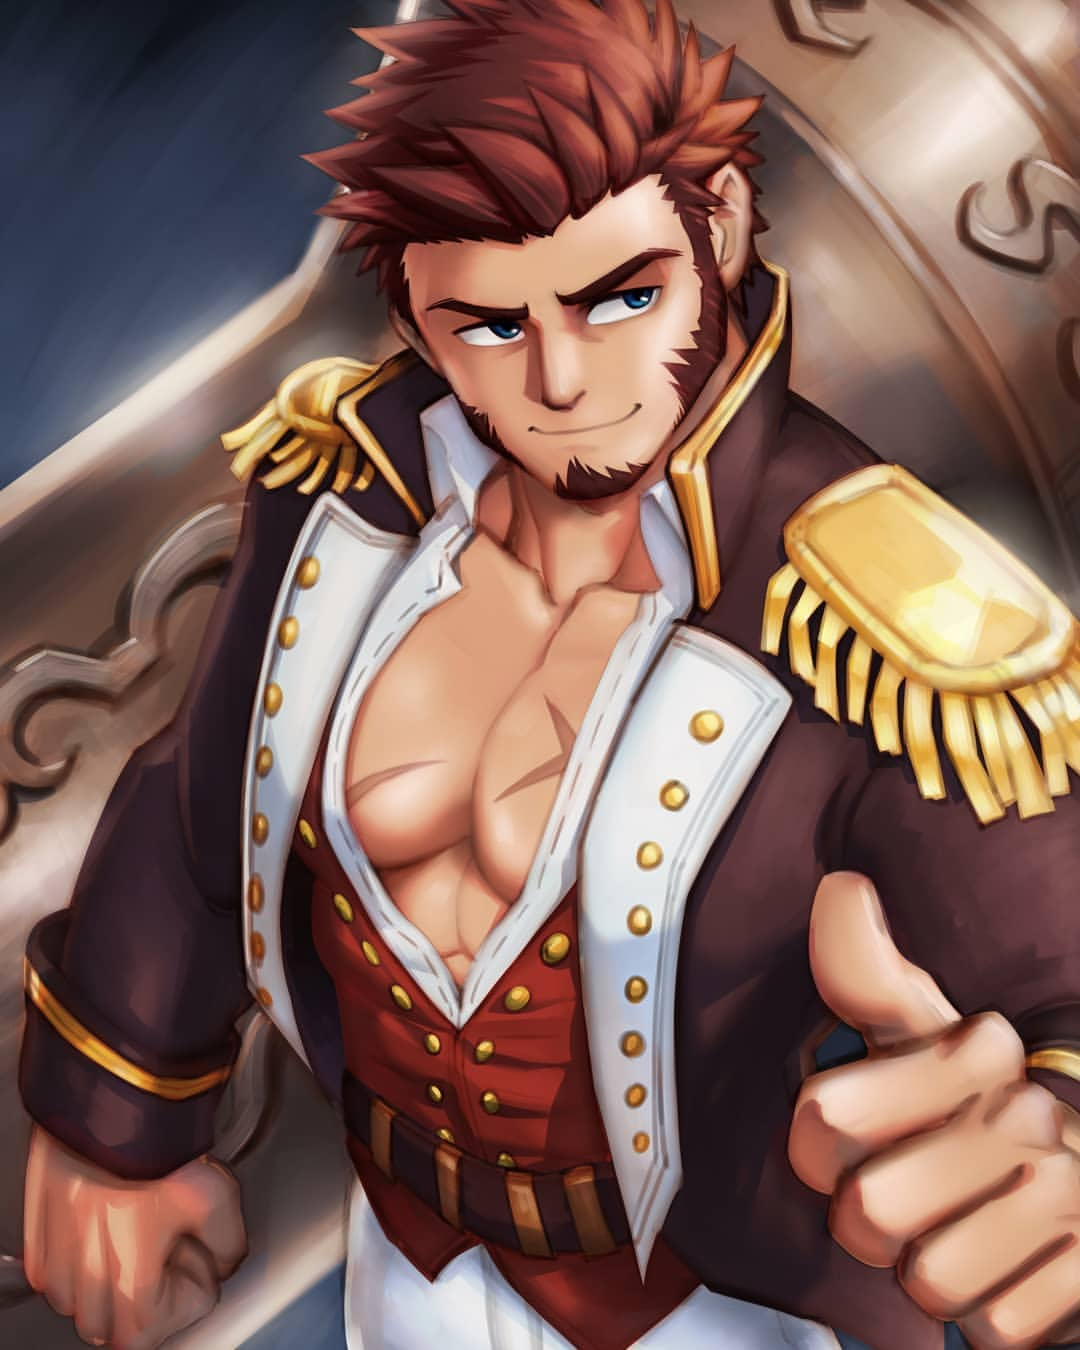 1boy abs bara beard blue_eyes brown_hair chest collared_jacket epaulettes facial_hair fate/grand_order fate_(series) highres huge_weapon long_sleeves looking_to_the_side male_focus military military_uniform mondoart muscle napoleon_bonaparte_(fate/grand_order) pants pectorals scar sideburns simple_background smile solo thumbs_up uniform weapon